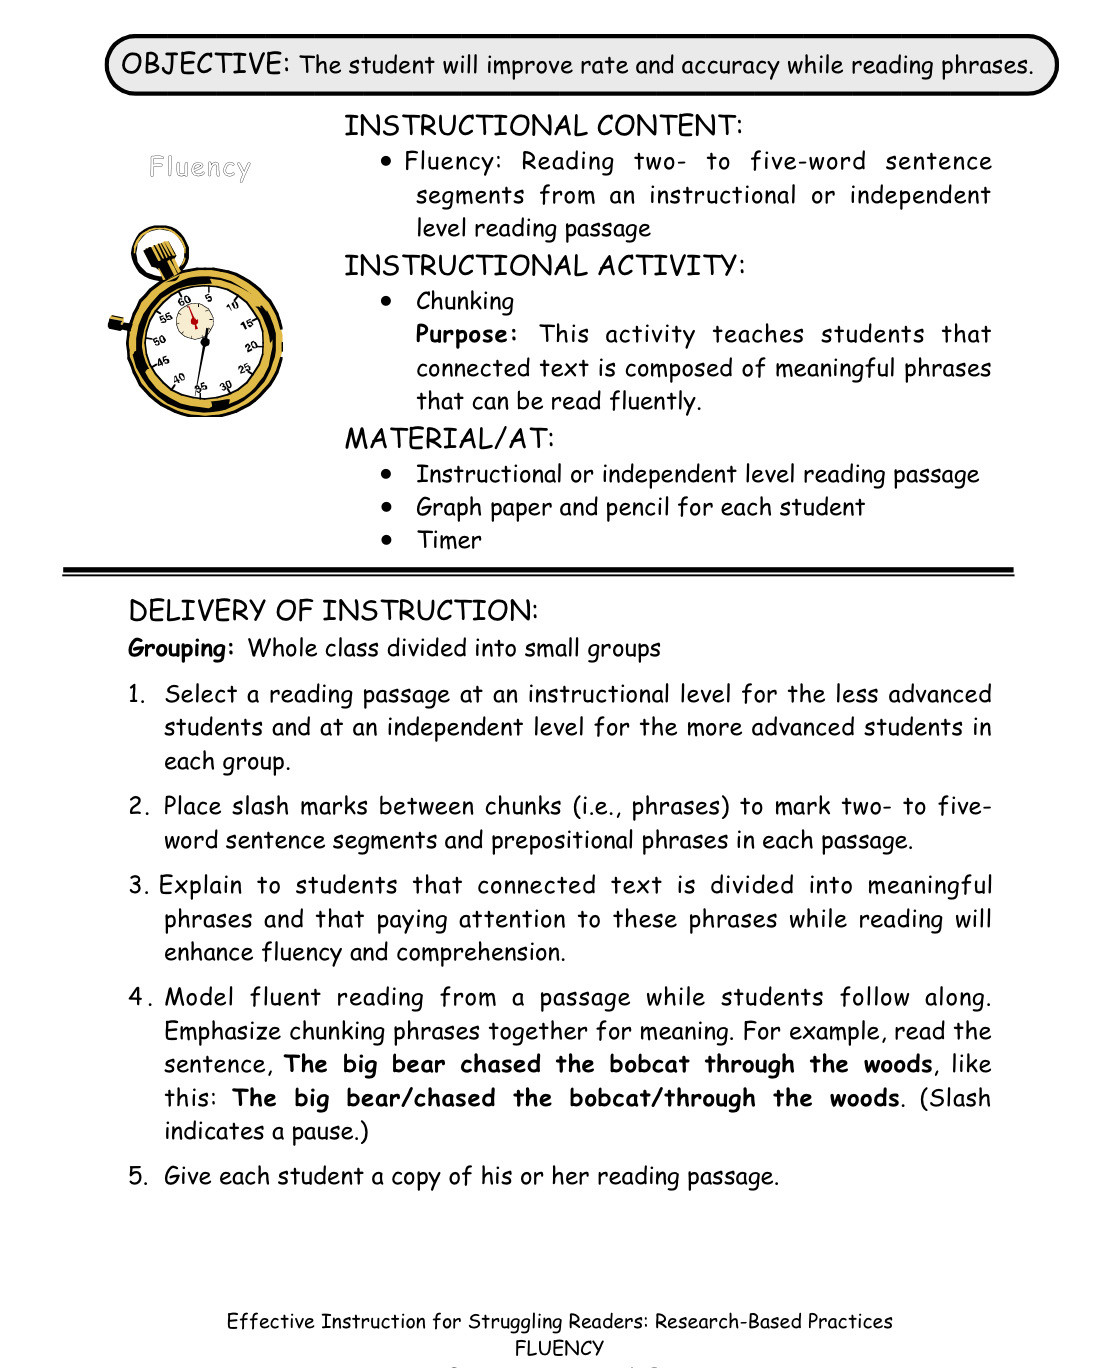 1st Grade Reading Fluency Worksheets Math Worksheet First Grade Prehensionges Image Ideas